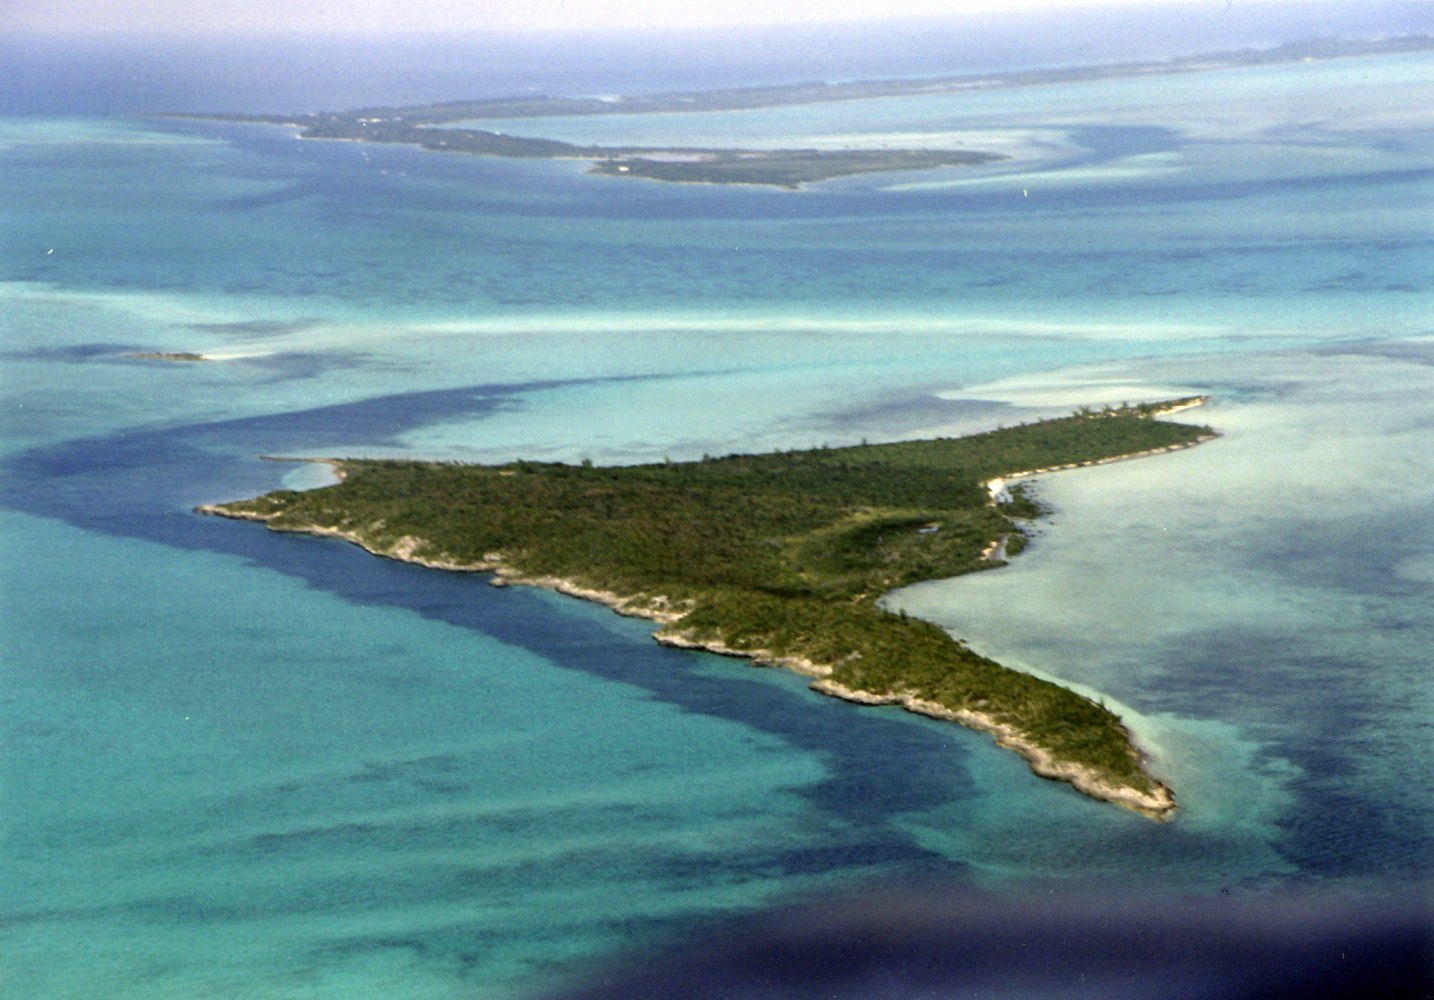 Private islands for sale wild berry island bahamas for Bahamas private island for sale